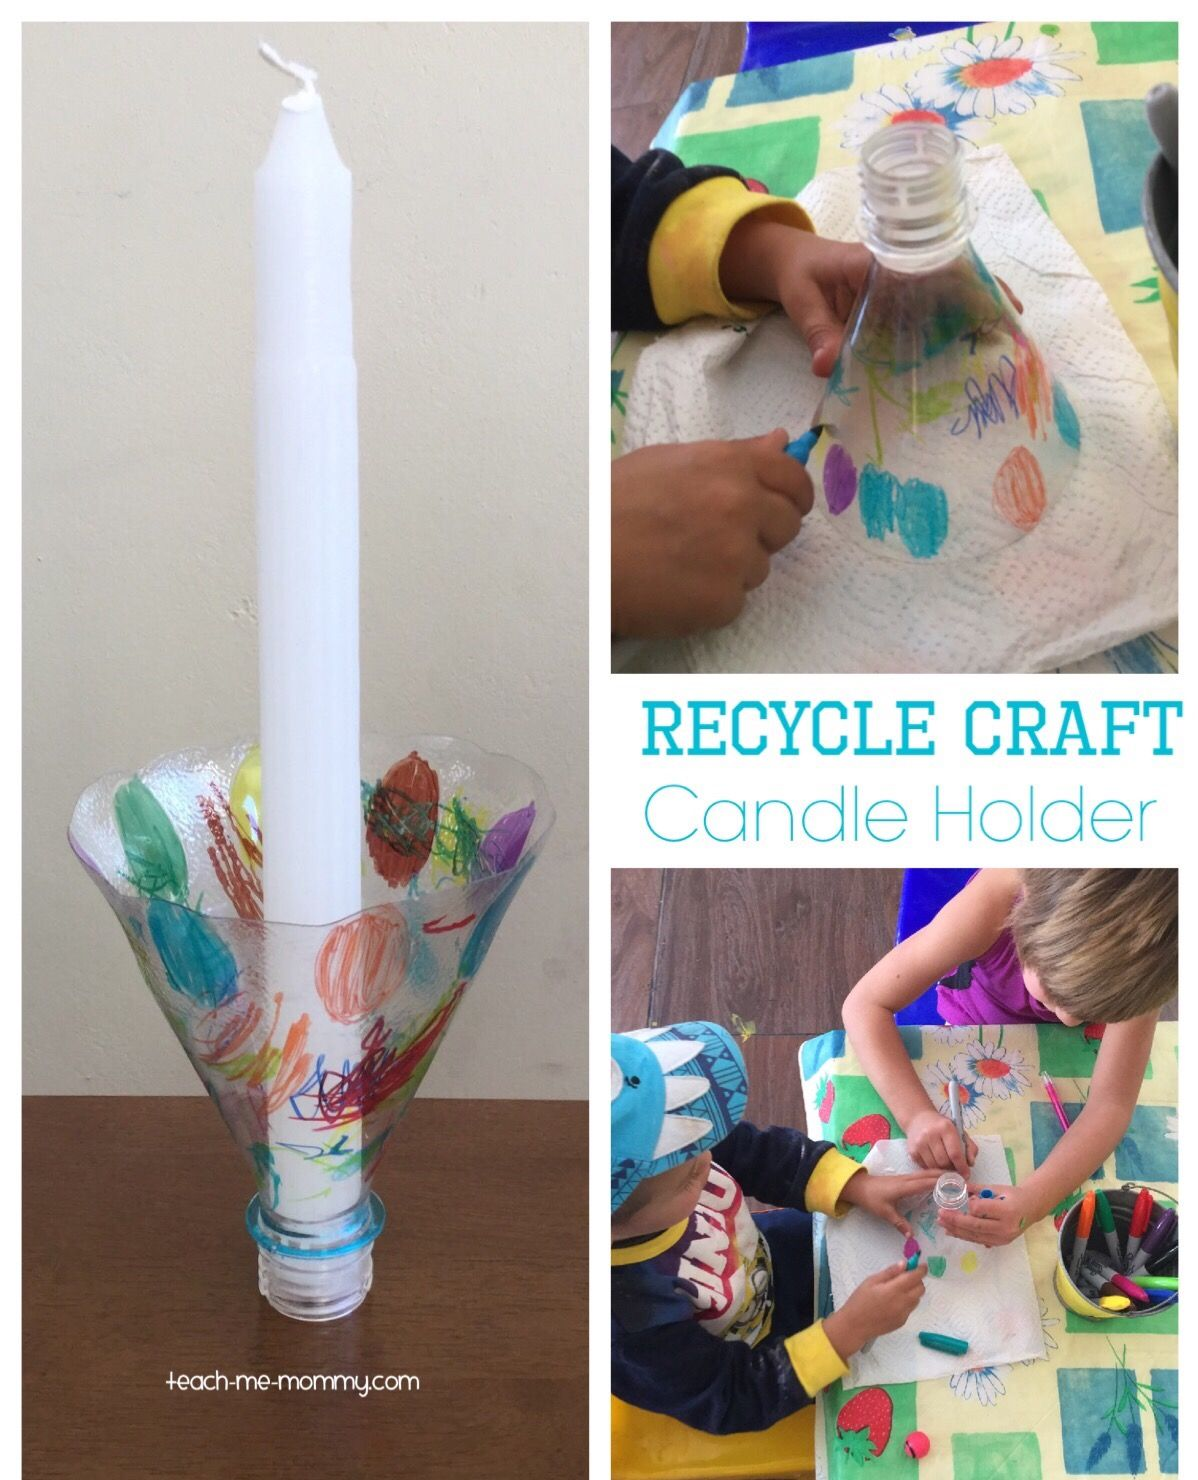 Recycle Craft Candle Holder Kid Blogger Network Activities